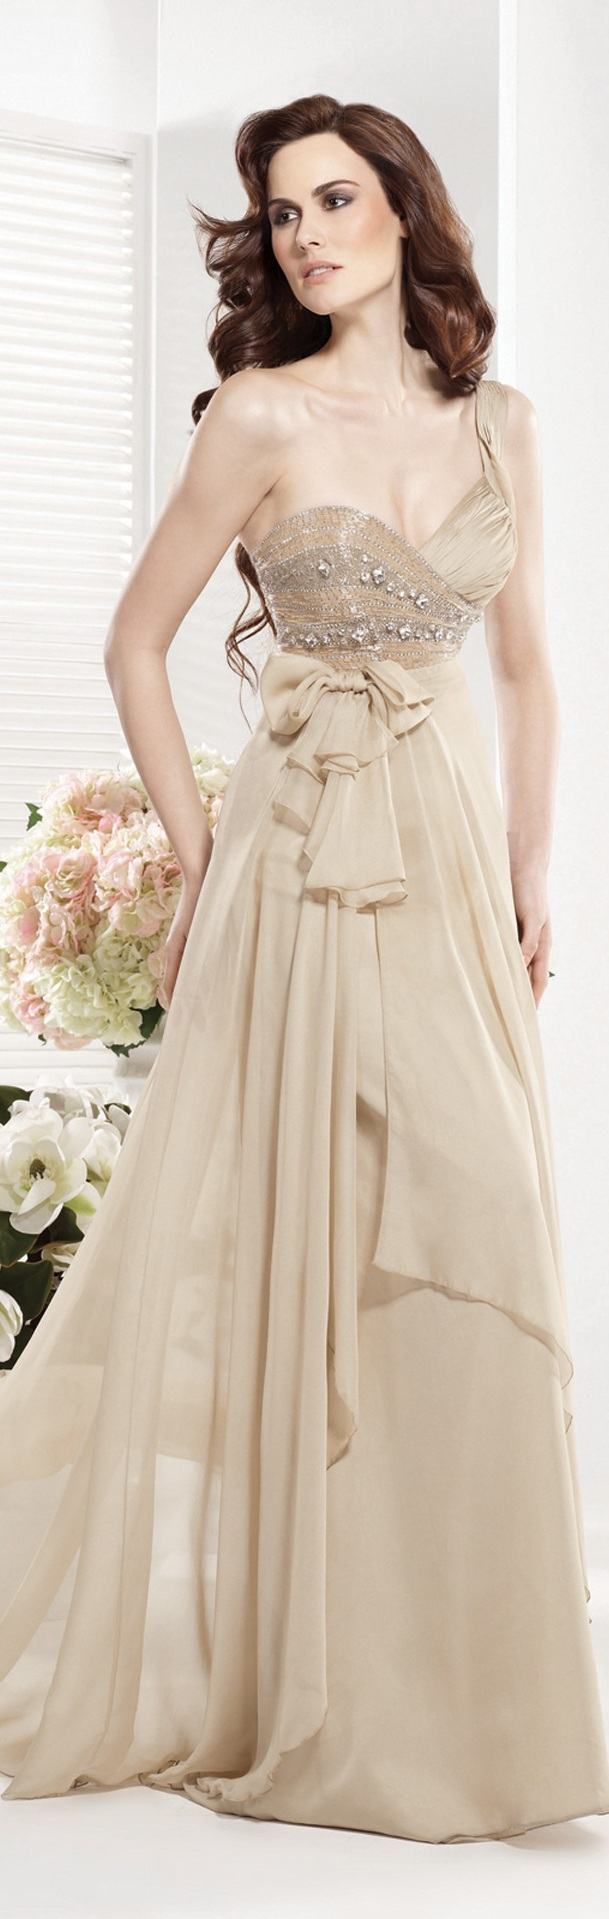 Tarik ediz couture beautiful neutral tarik ediz pinterest